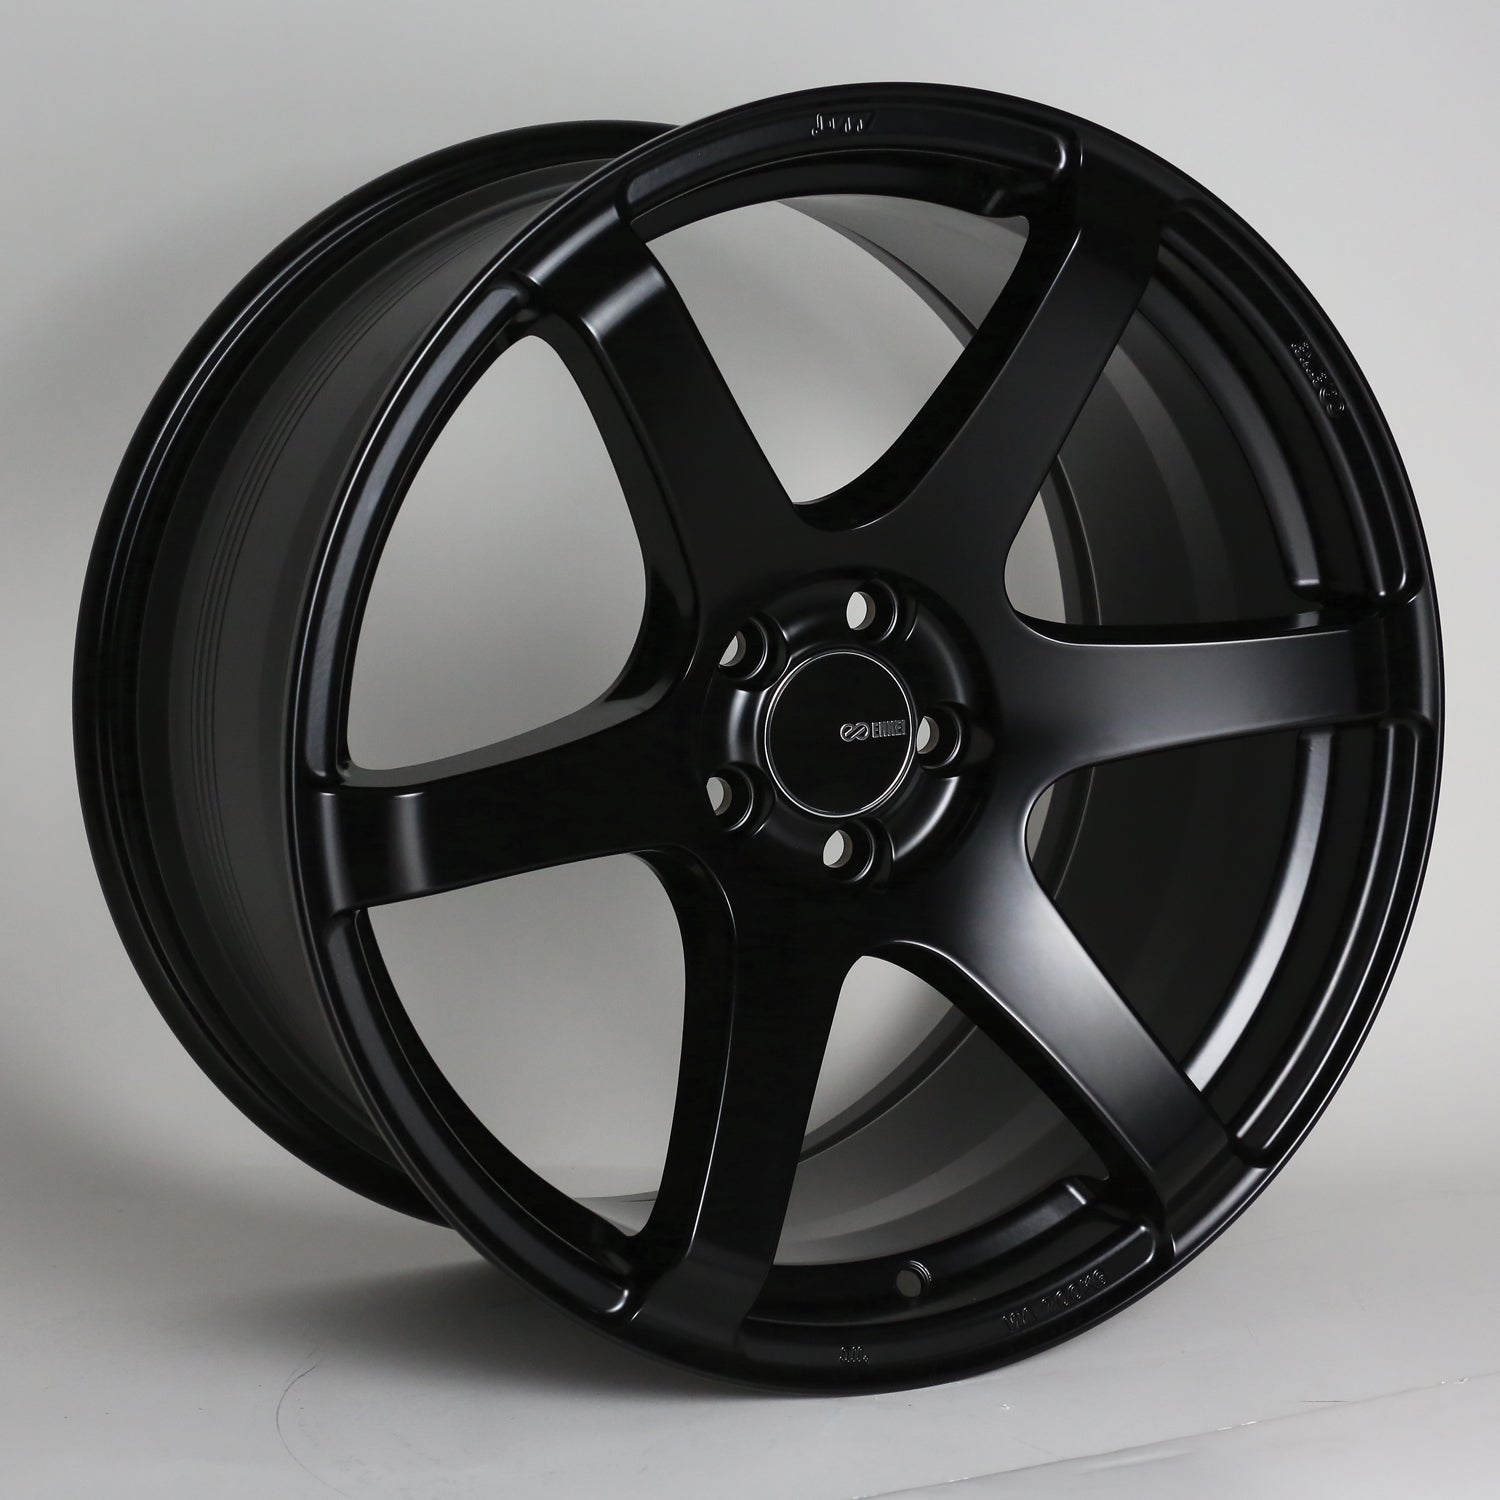 Enkei T6S 17x8 45mm Offset 5x112 72.6mm Bore Matte Black Wheel